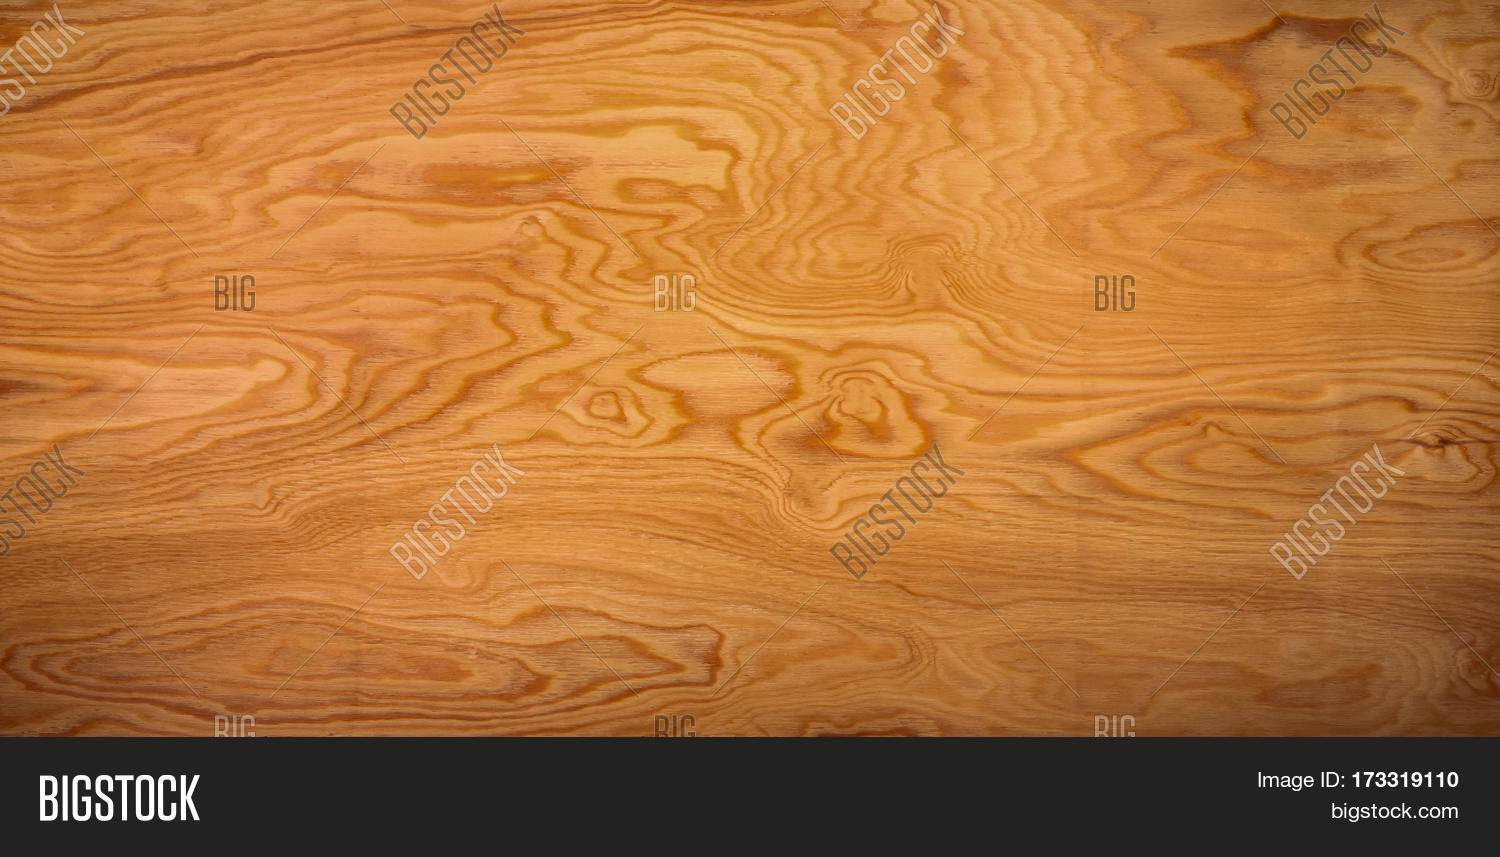 Wood table top texture - Old Wood Texture Background Surface Wood Table Surface Top View Vintage Wood Texture Background